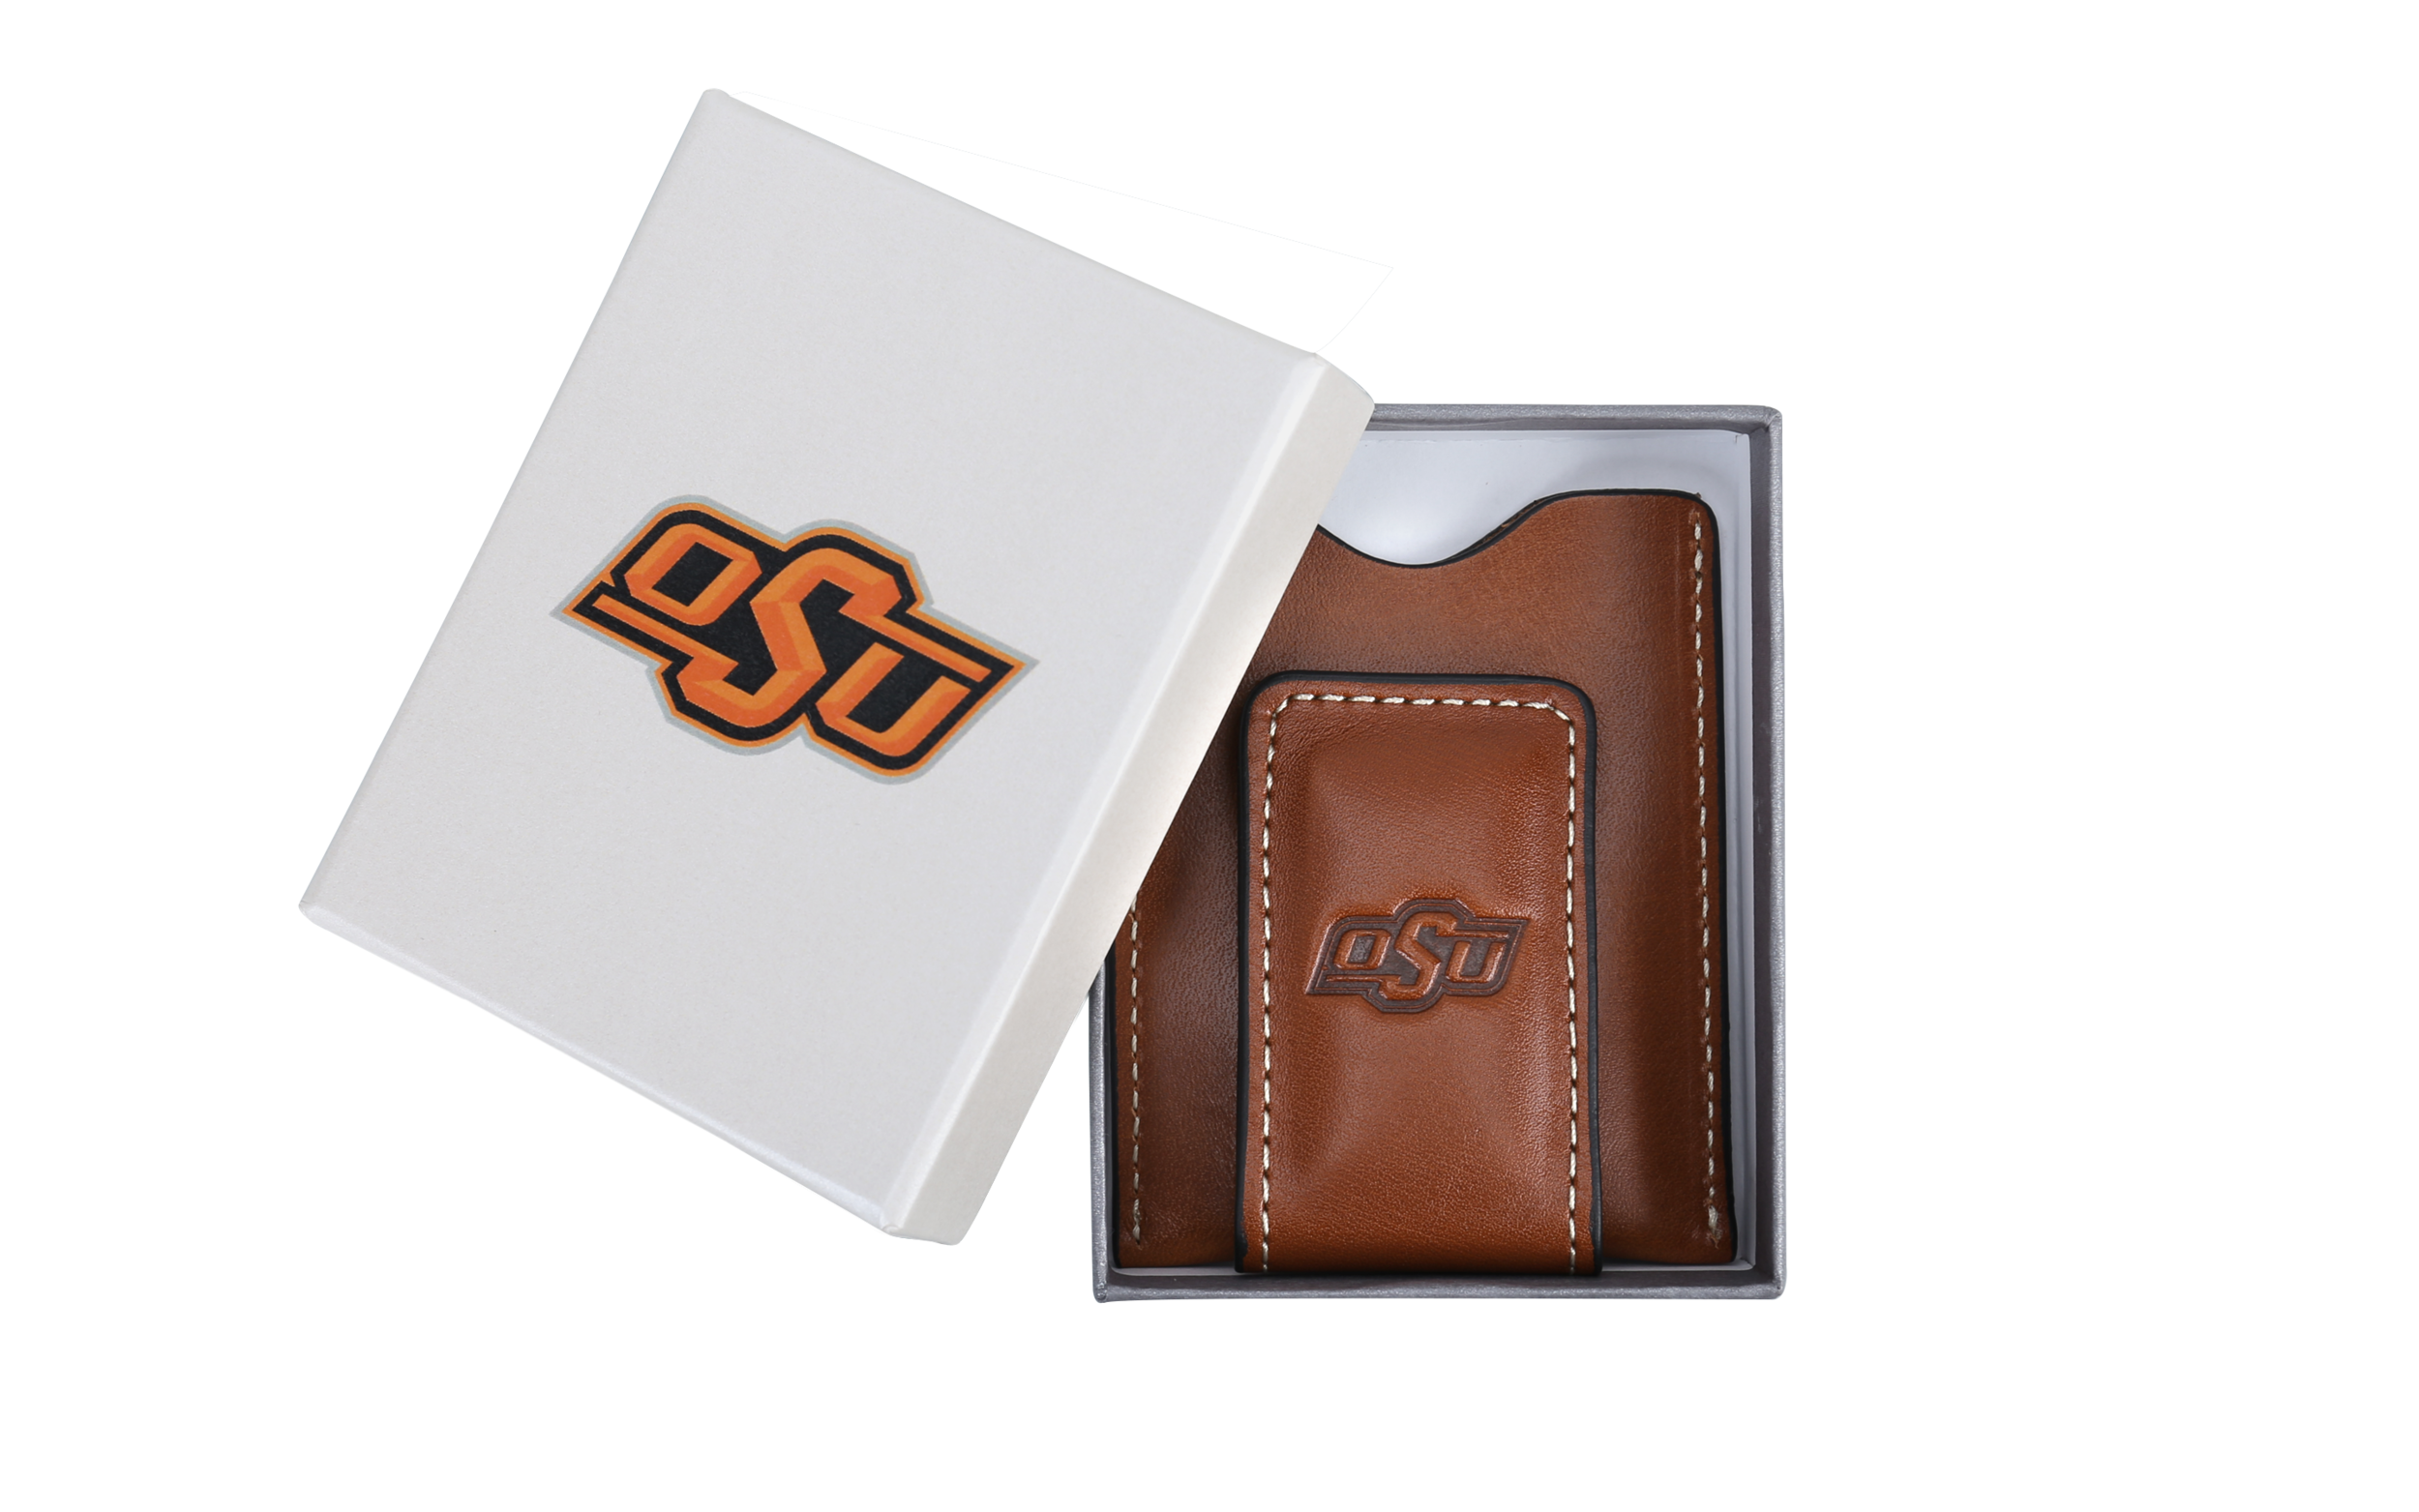 OSU money clip in box.png